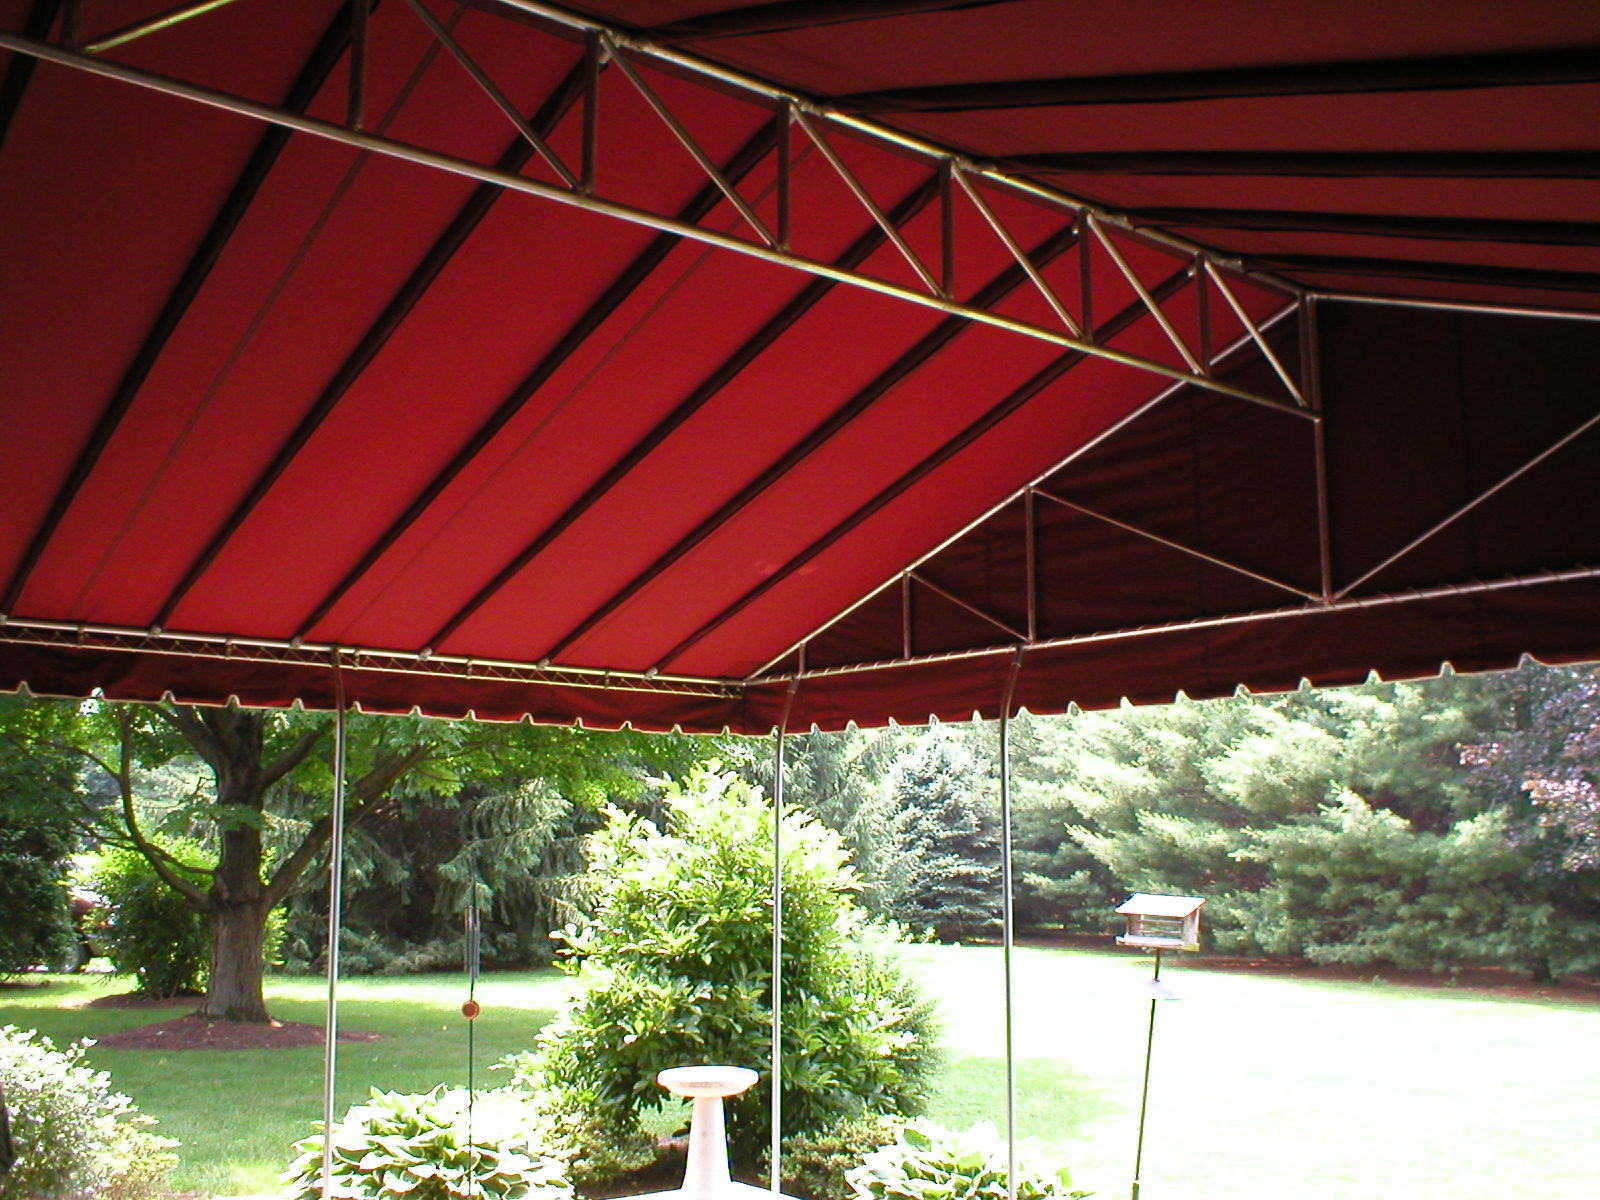 Gable Style Canopy With Striped Sunbrella Fabric East